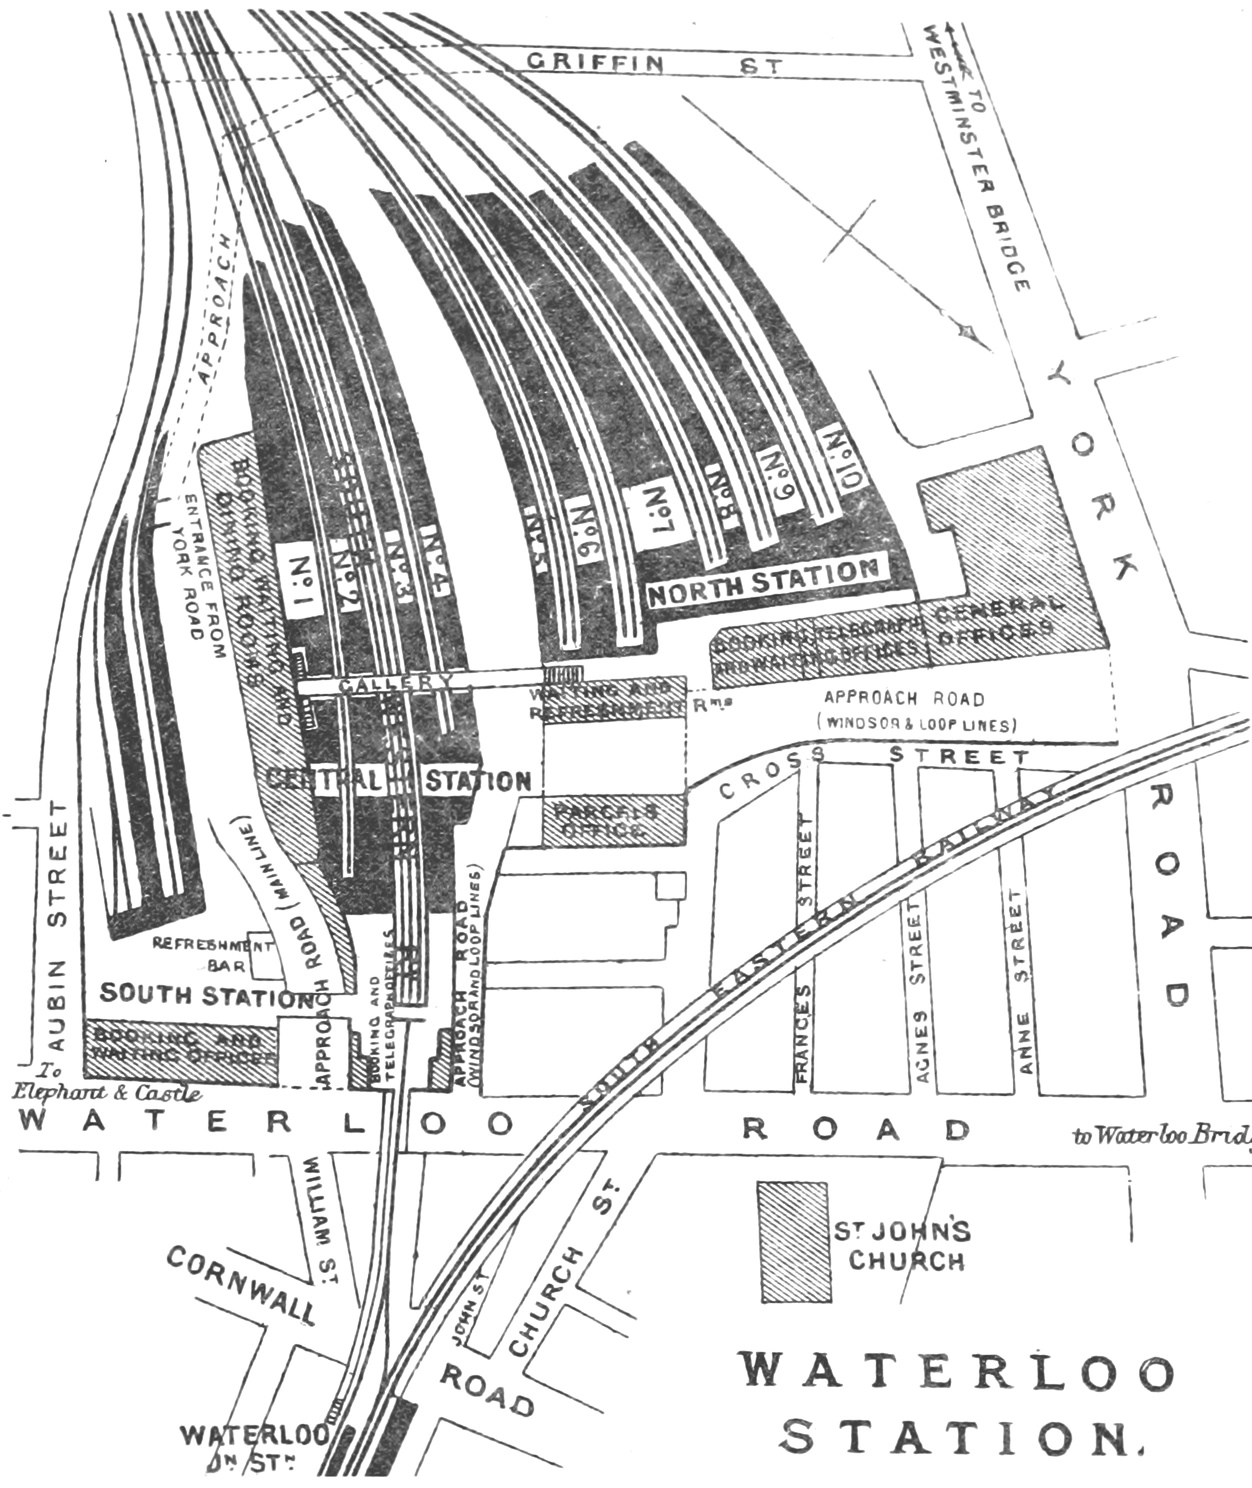 File:DISTRICT(1888) p141 - Waterloo Station (plan).jpg ...